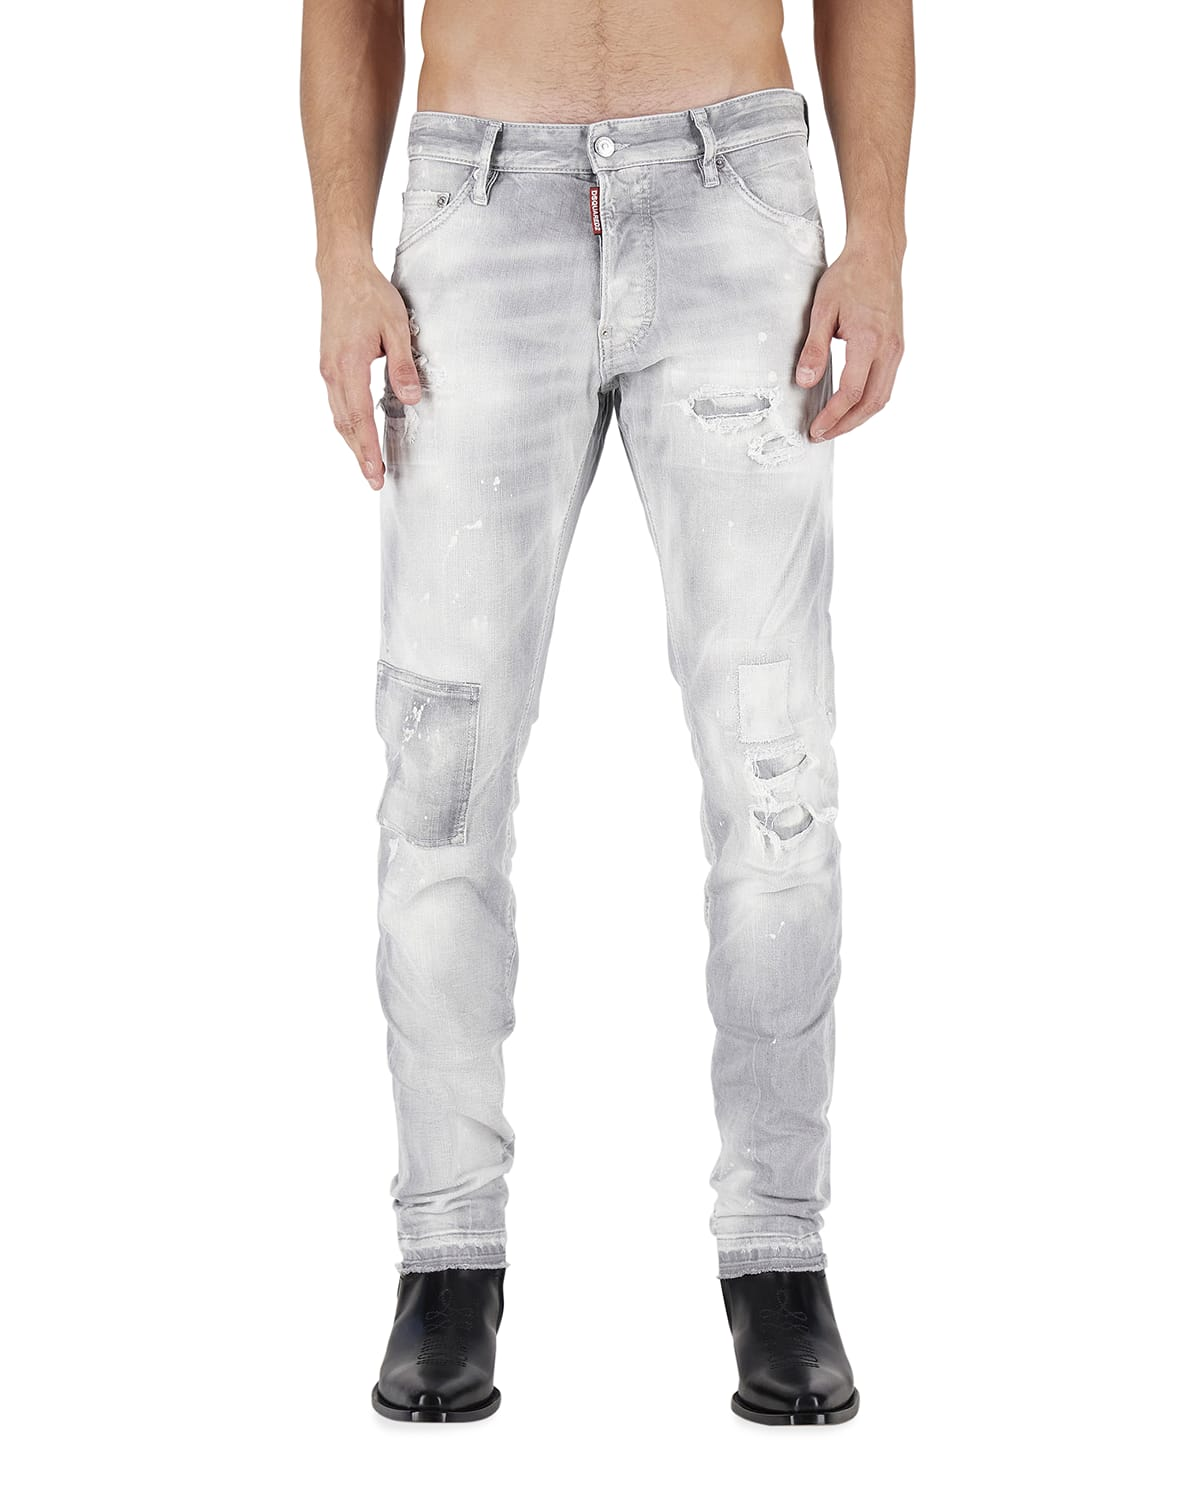 Men's Made With Love Cool Guy Jeans